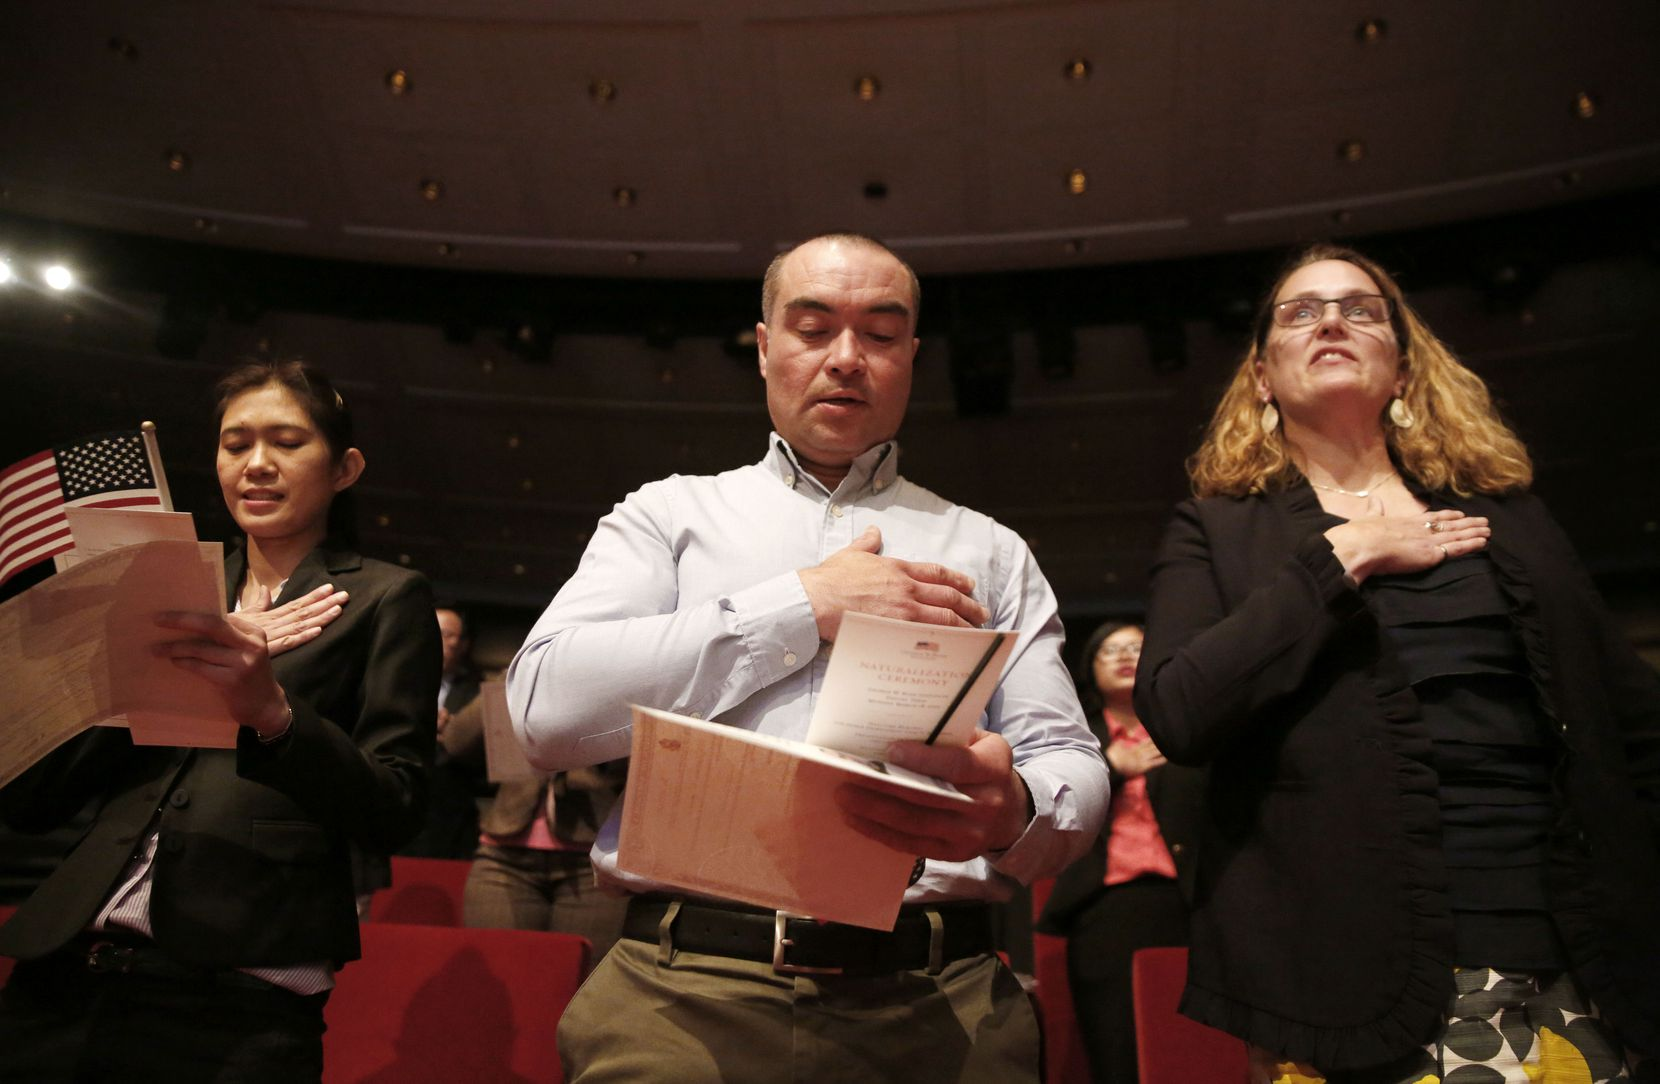 New U.S. citizens (from left) Supinya Phapant, of Thailand, Julio Martinez, of El Salvado,r and Mary McCarthy, of Canada, recite the Pledge of Allegiance during a naturalization ceremony at the George W. Bush Presidential Center in Dallas on Monday, March 18, 2019.